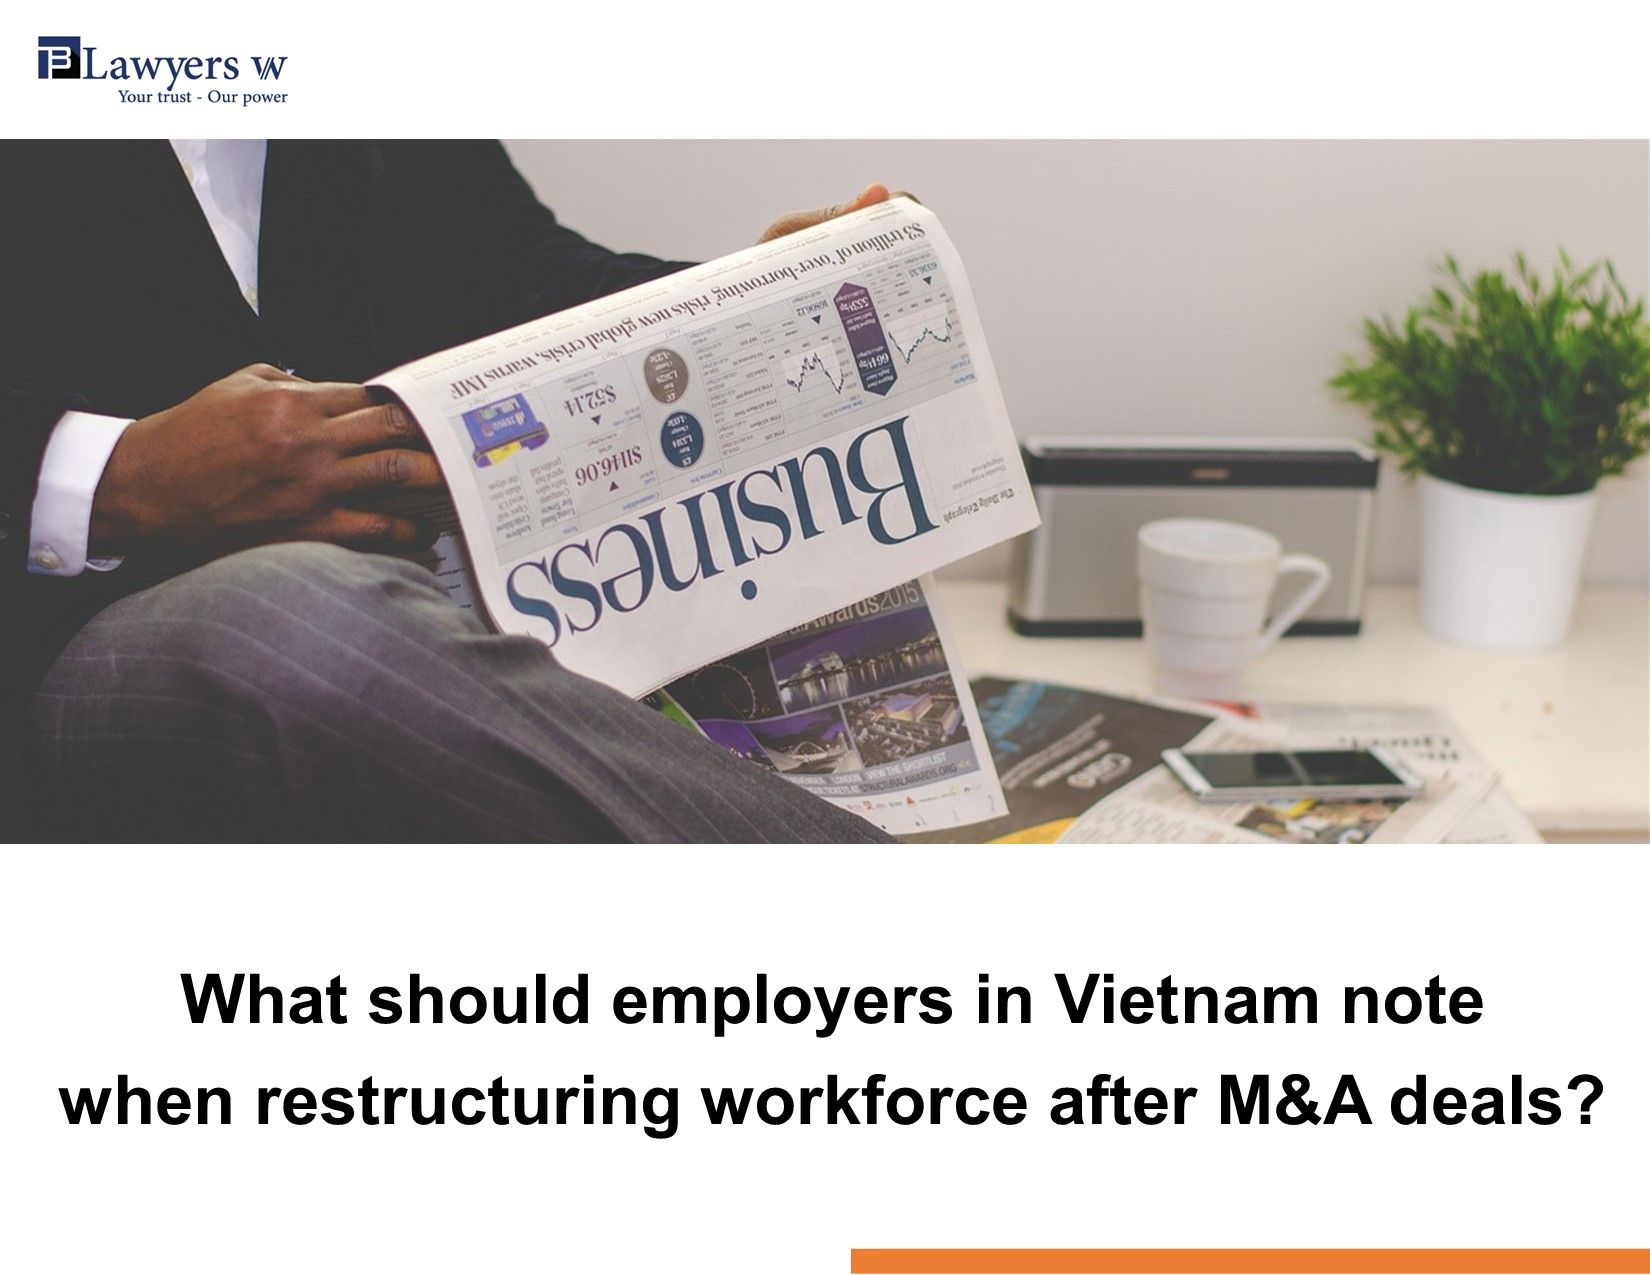 What should employers note on M&A deals